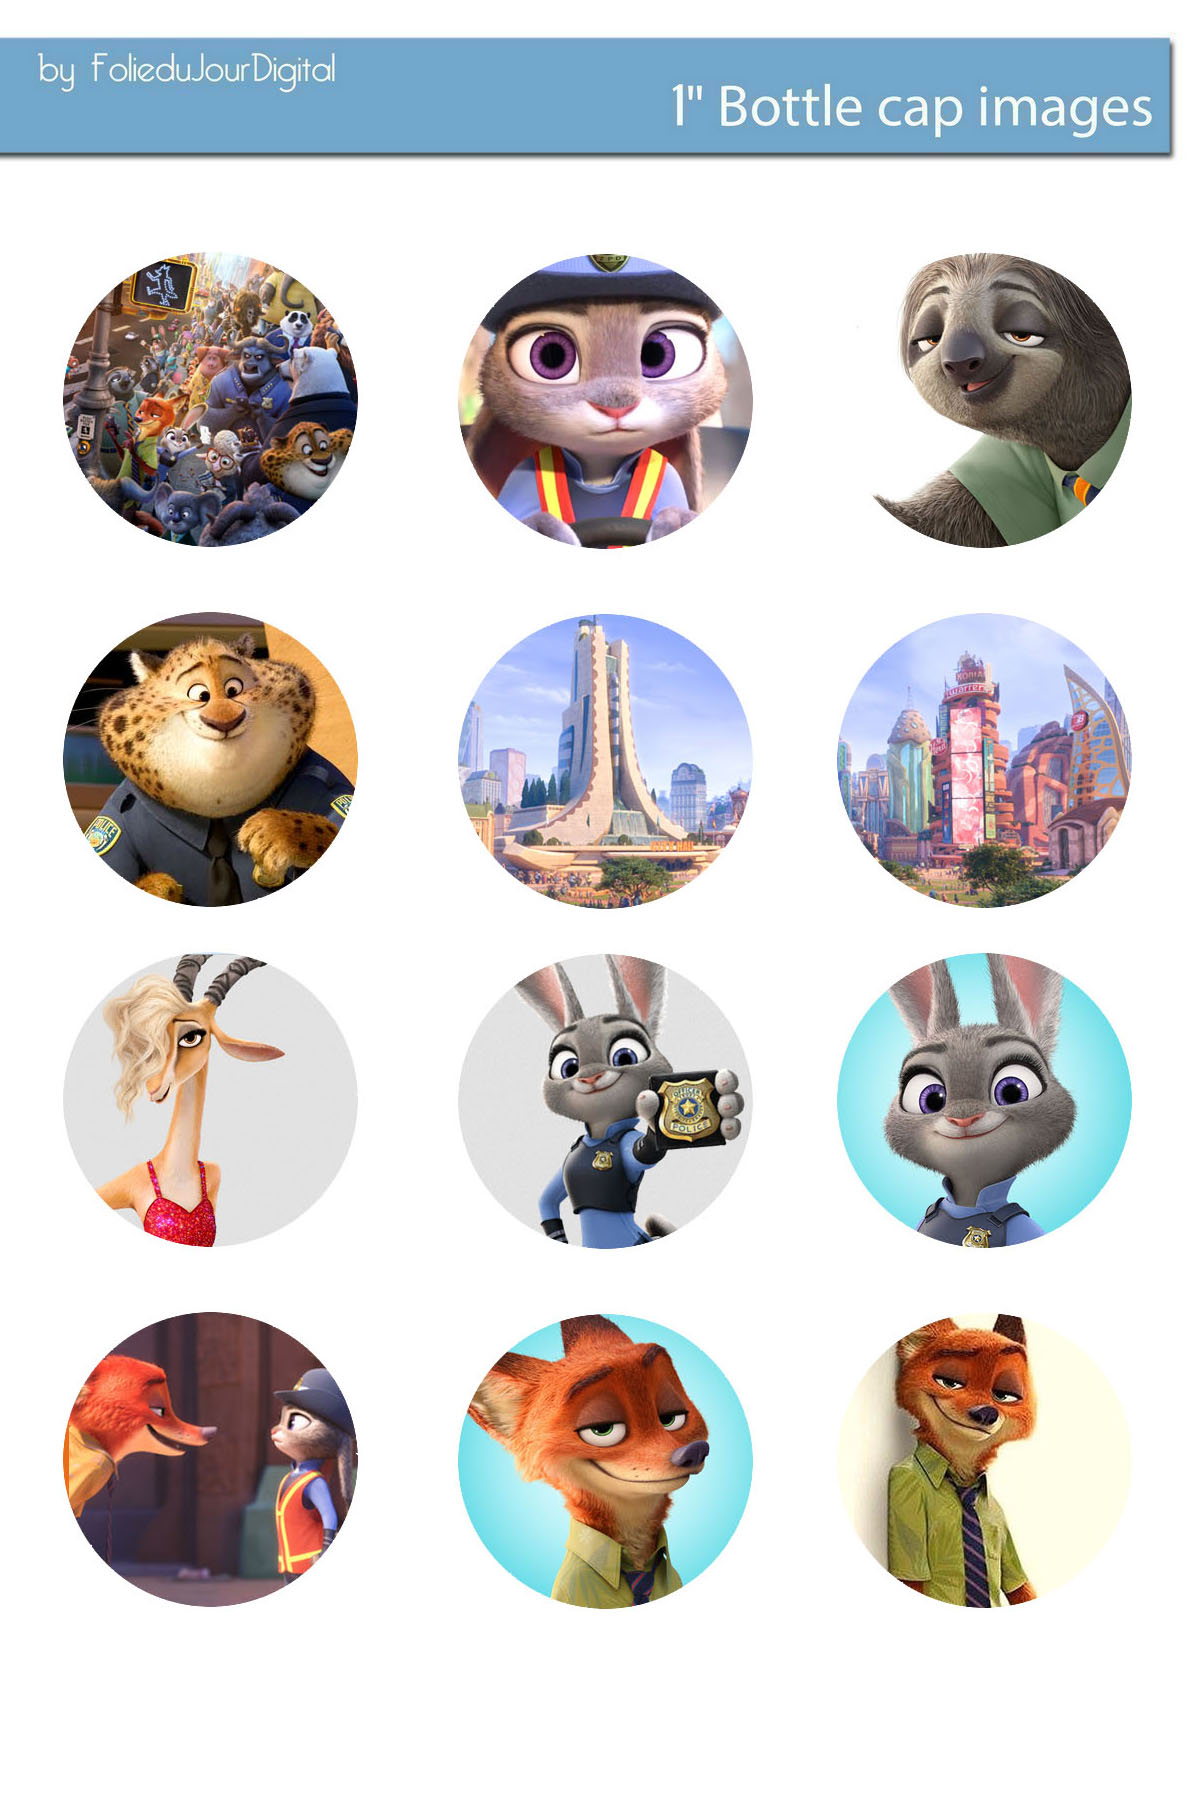 Zootopia Free Bottle Cap Images